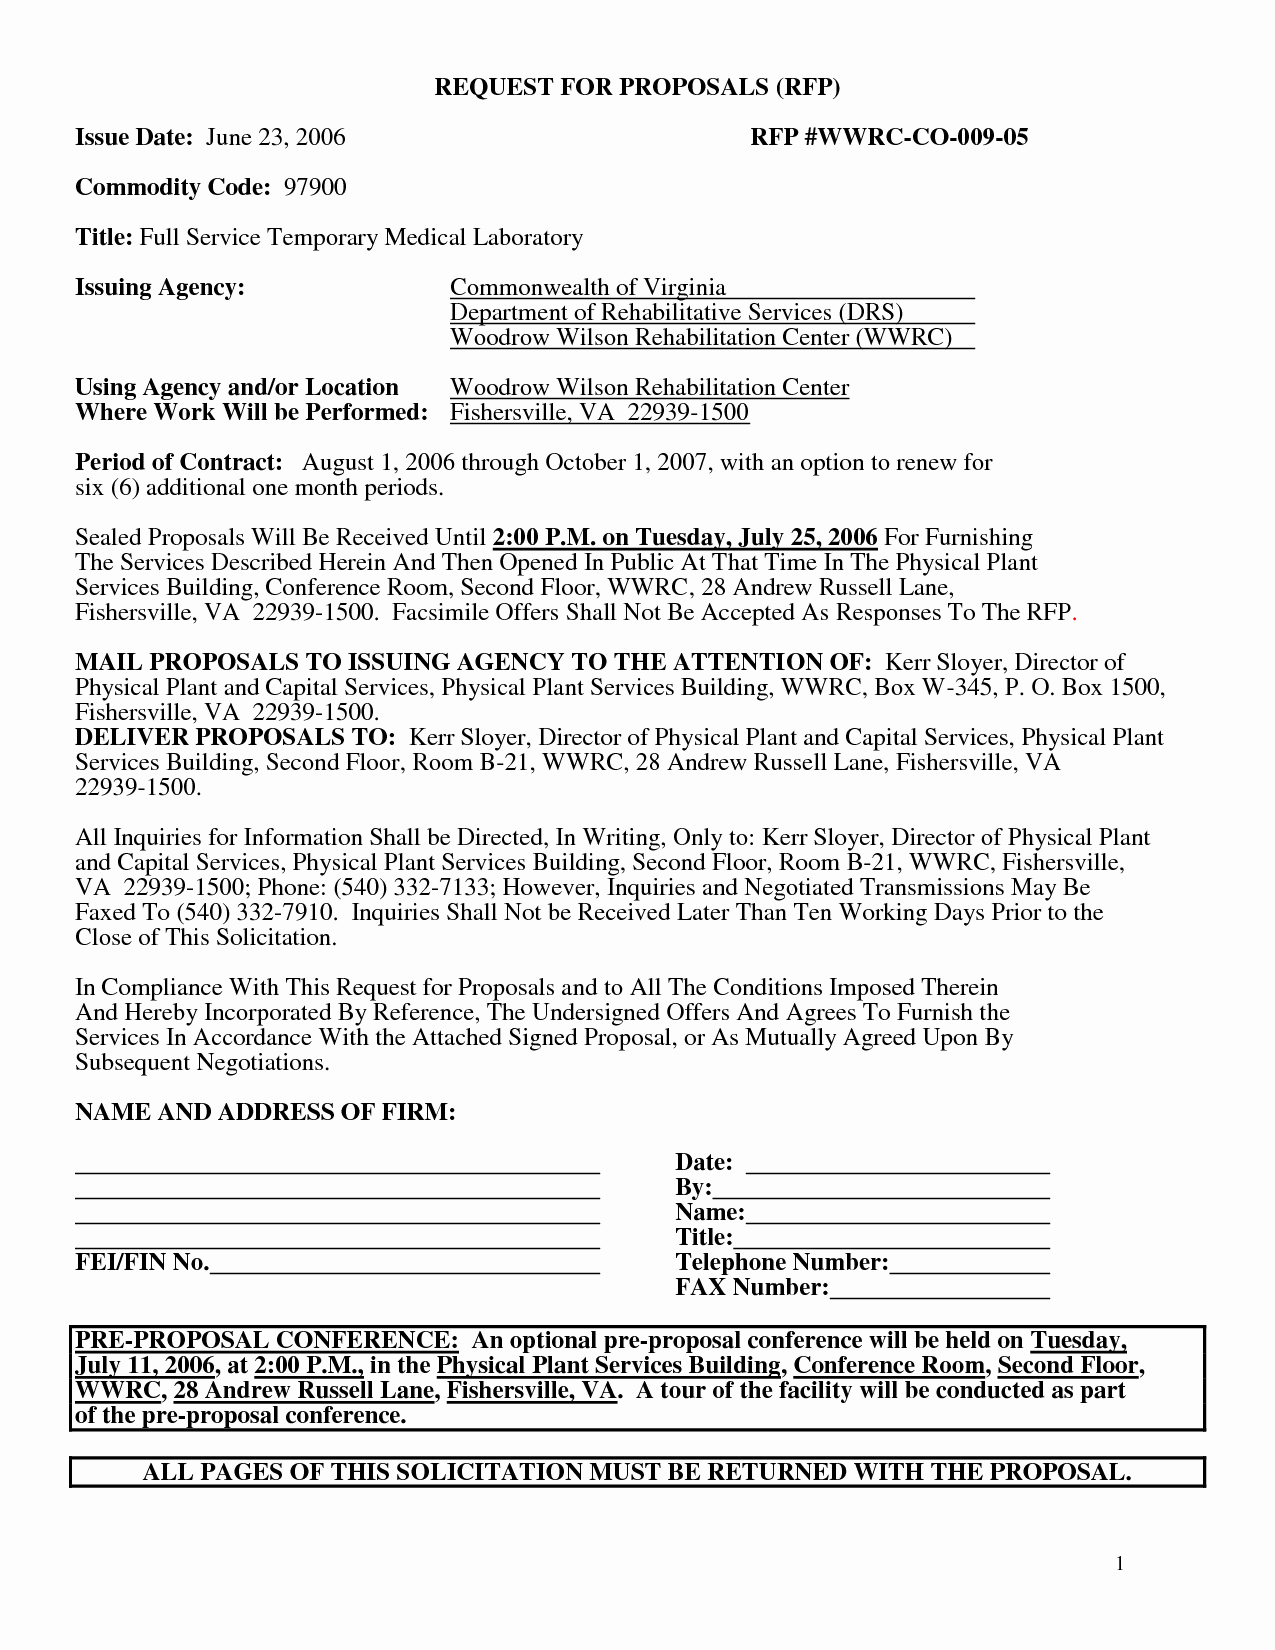 Commercial Lease Proposal Template Luxury Best S Of Mercial Lease Example Free Mercial